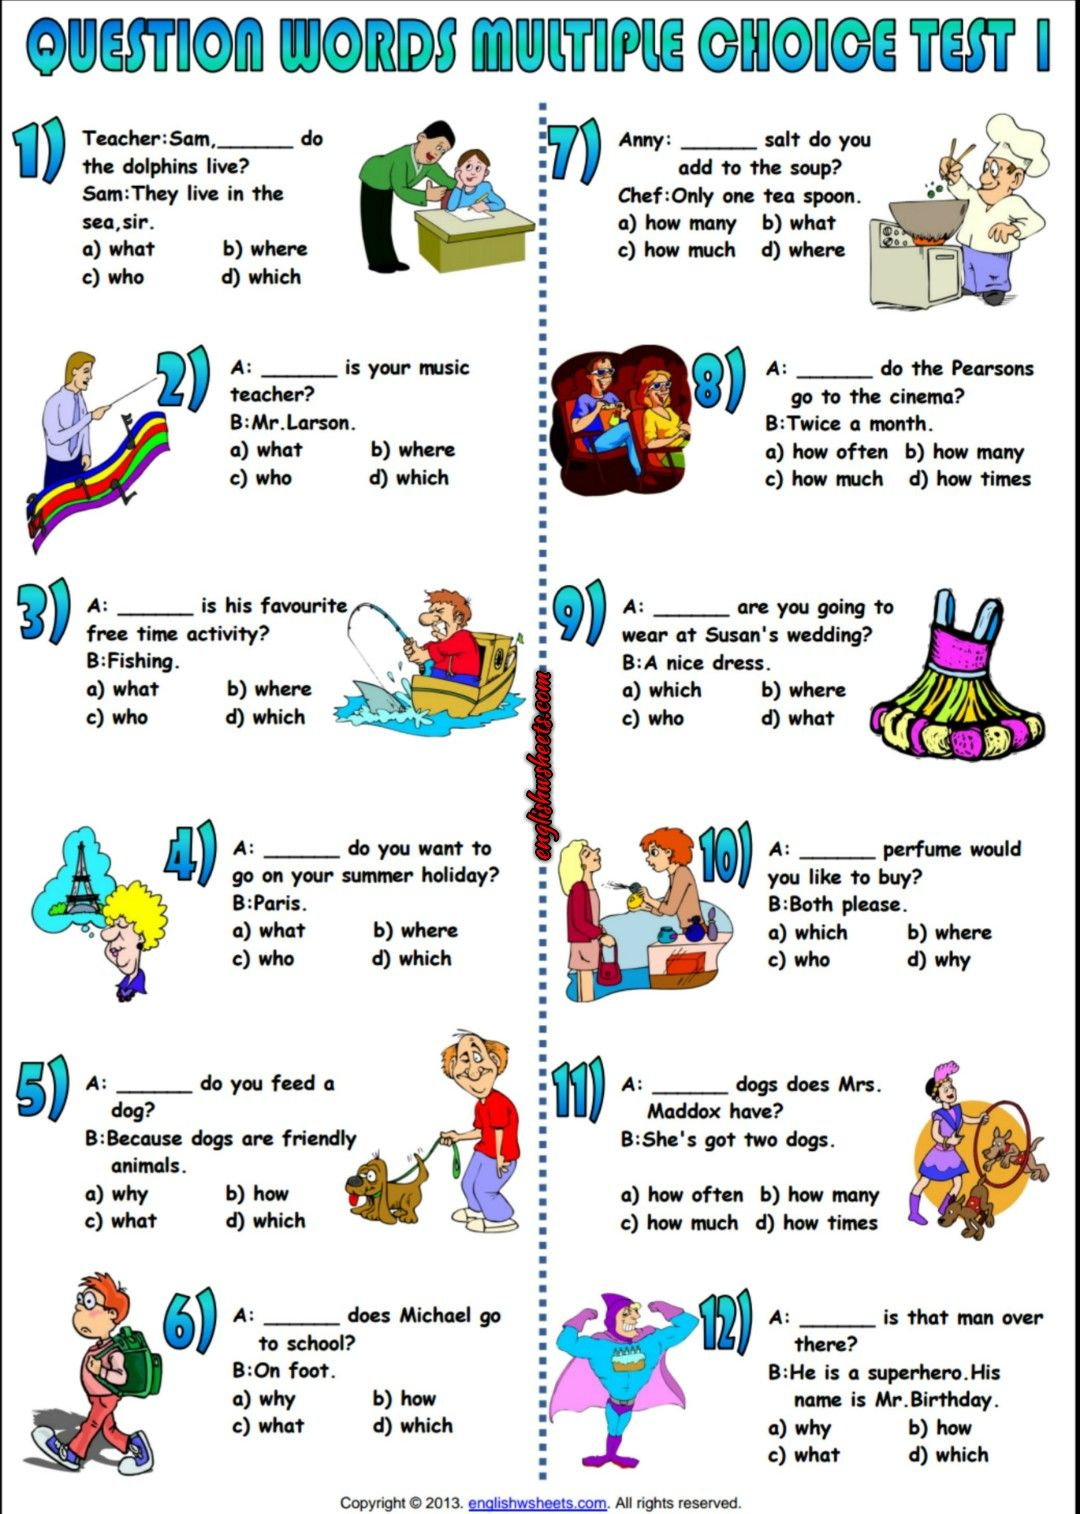 Feudalism Worksheet Pdf Question Words Multiple Choice Test Esl Worksheet  Esl Printable  Your You Re There Their They Re Worksheet Word with Interactive Worksheets For Kindergarten Pdf Question Words Multiple Choice Test Esl Worksheet Practice Worksheet For Significant Figures Excel